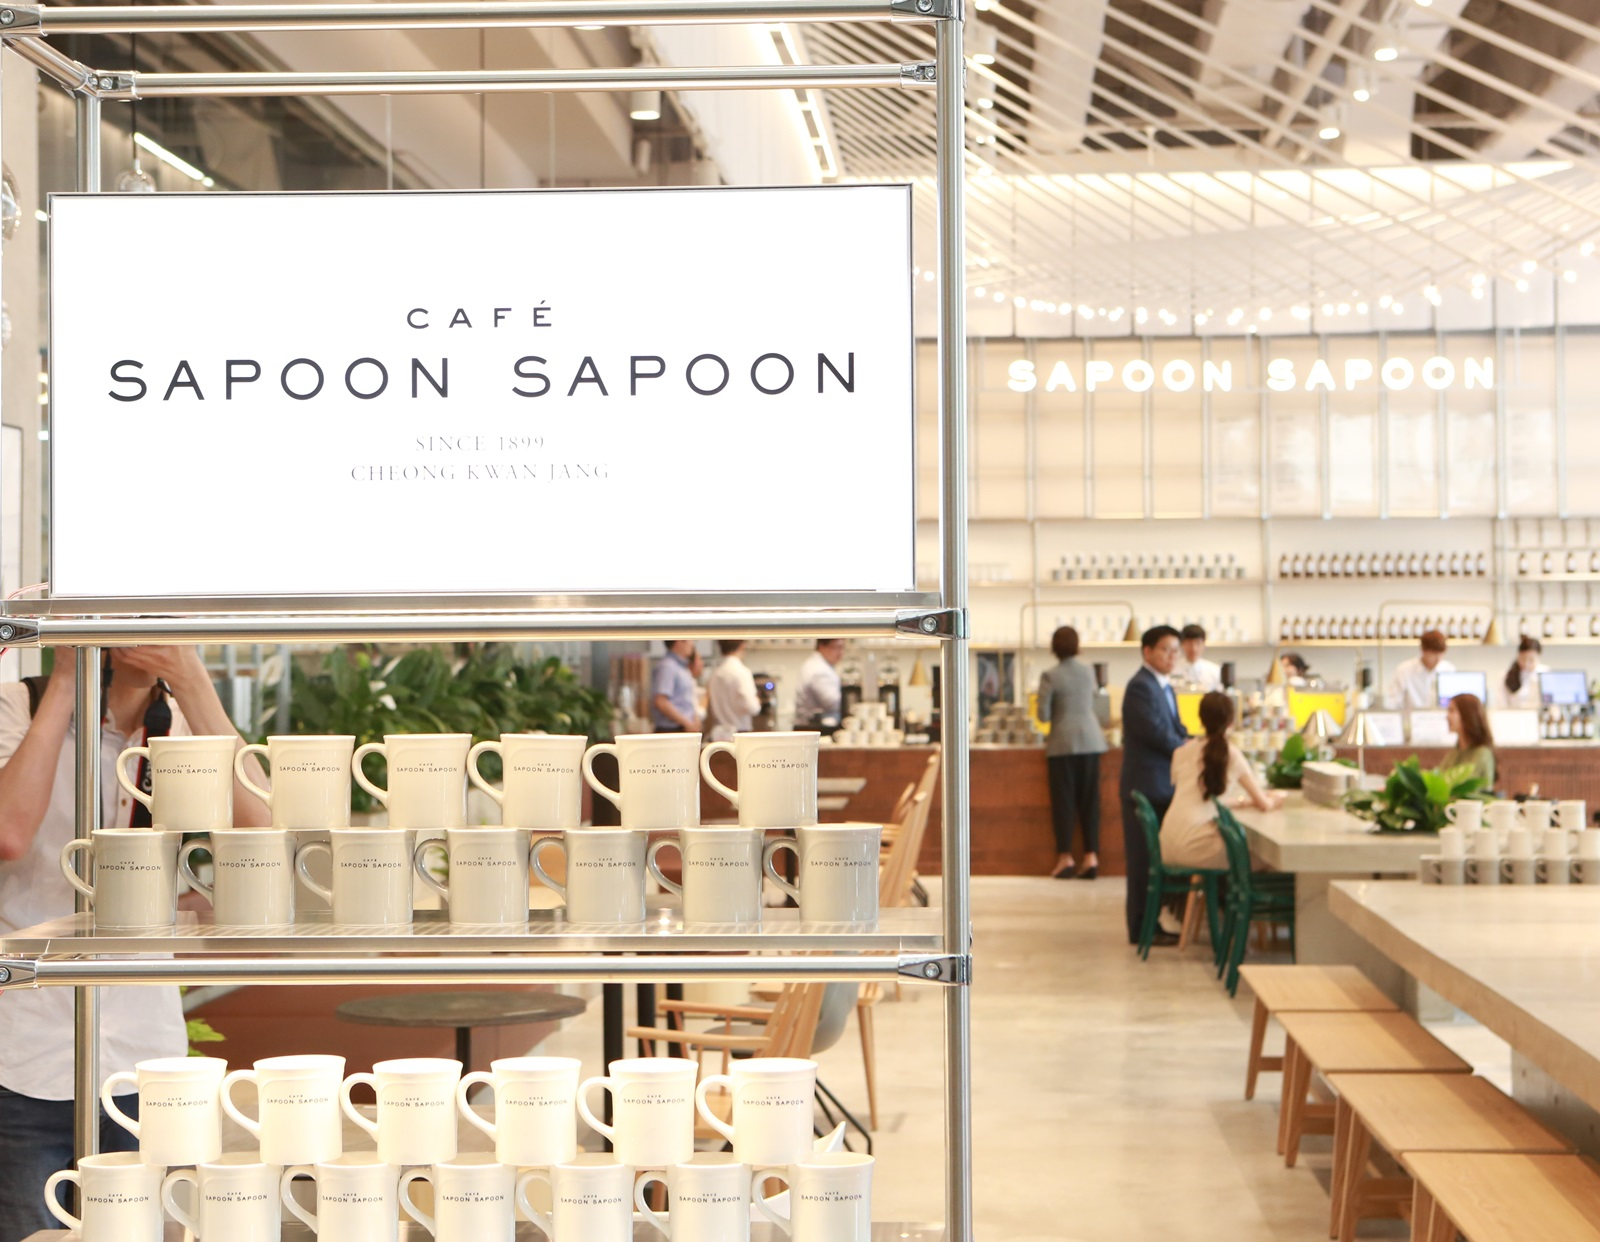 Café Sapoon Sapoon run by Korea Ginseng Corporation (KGC).